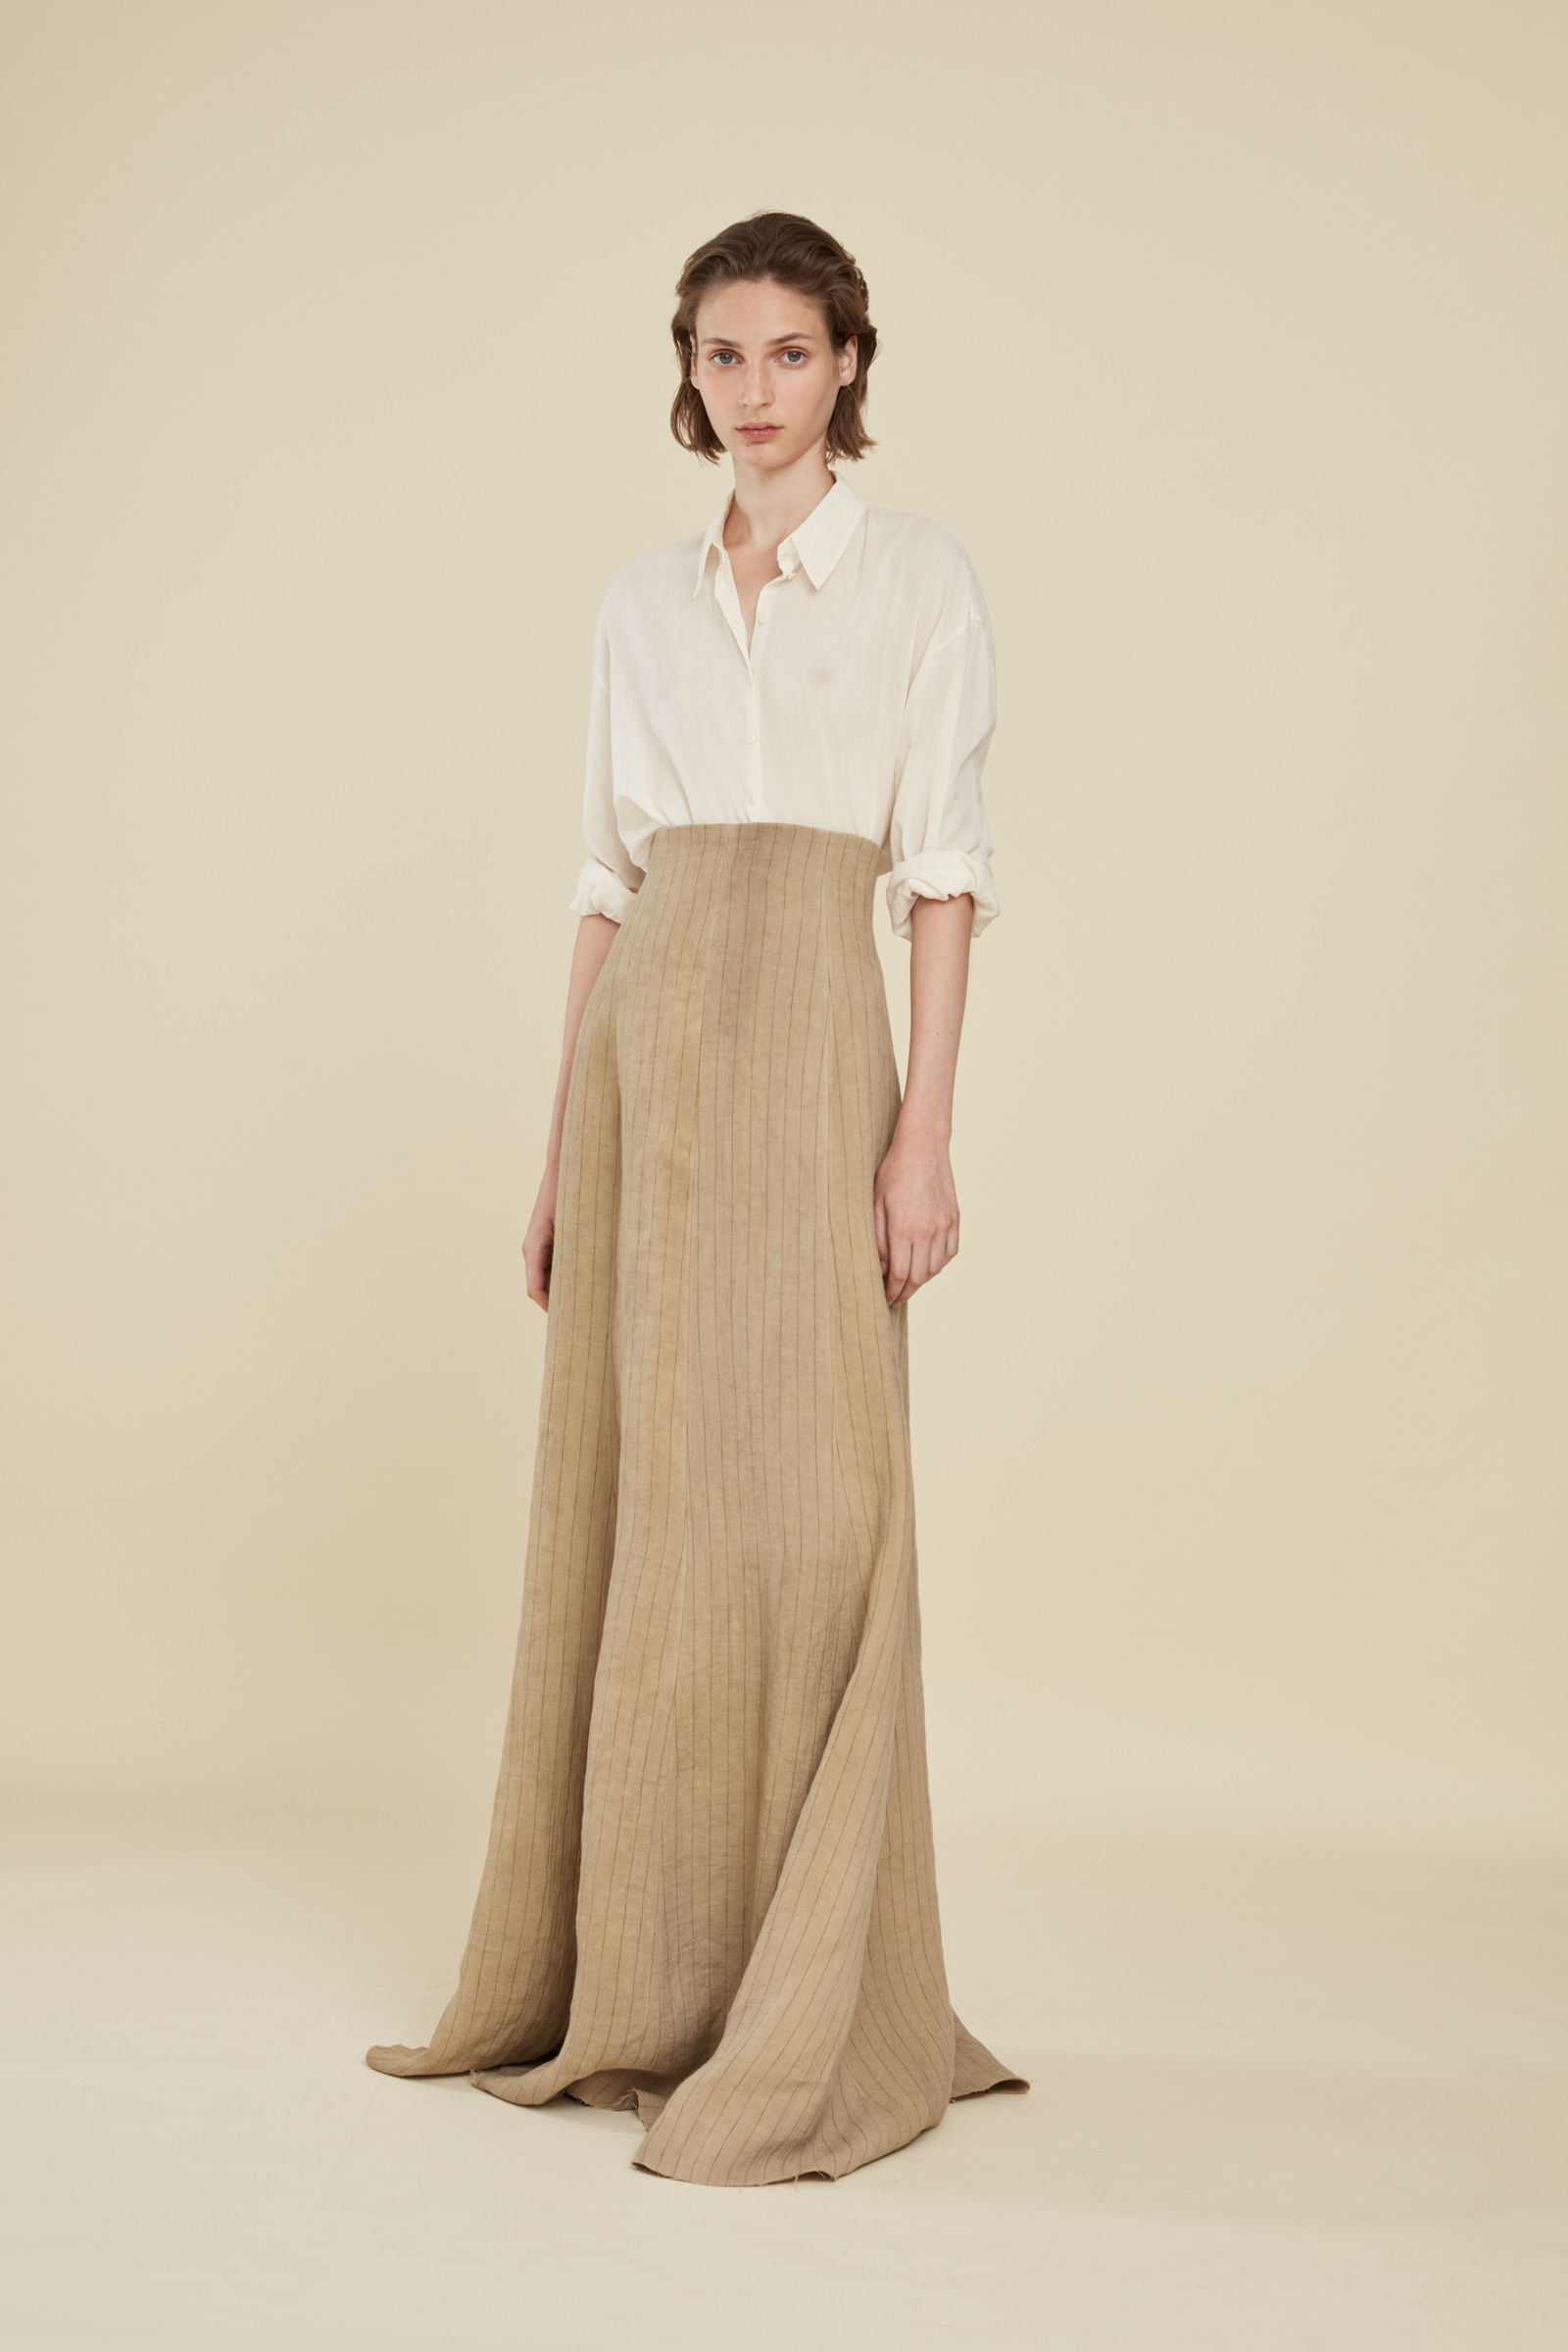 PAJA, STRIPED LINEN SKIRT, ESHOP collection – Cortana Moda